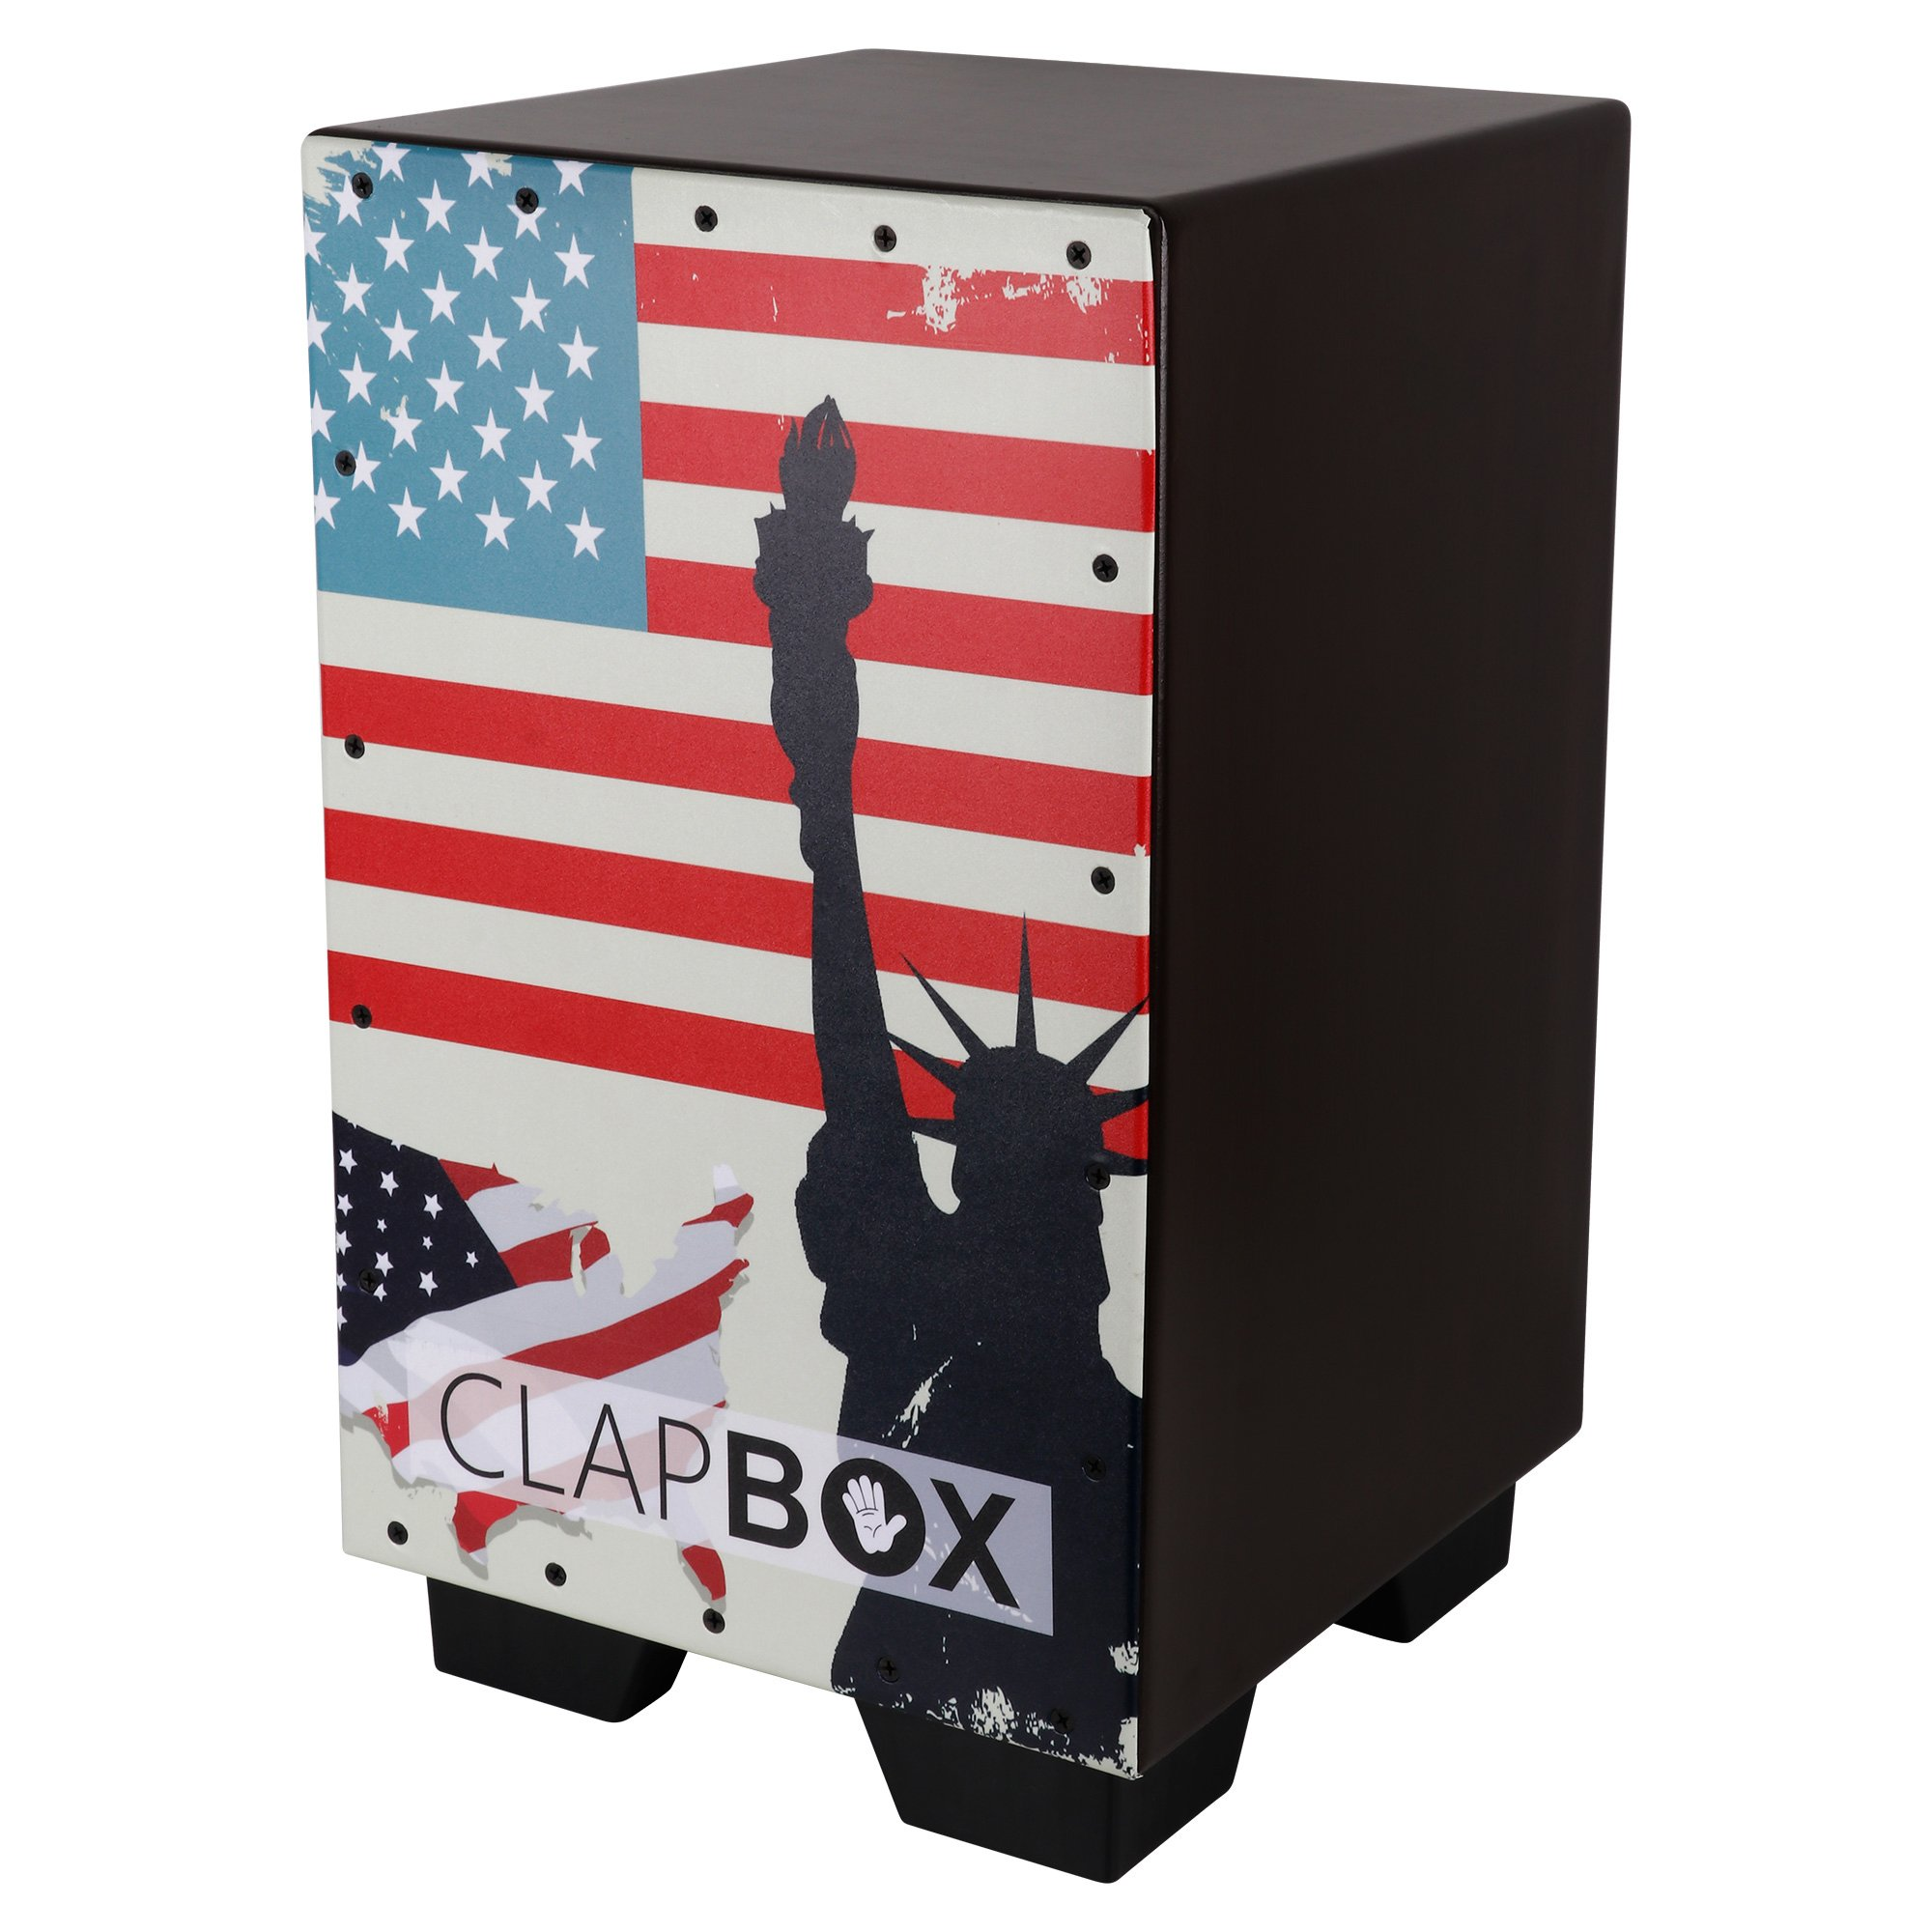 Clapbox Graphic Cajon -Brown, American Maple (H:50 W:30 L:30) - 3 Internal Snares product image